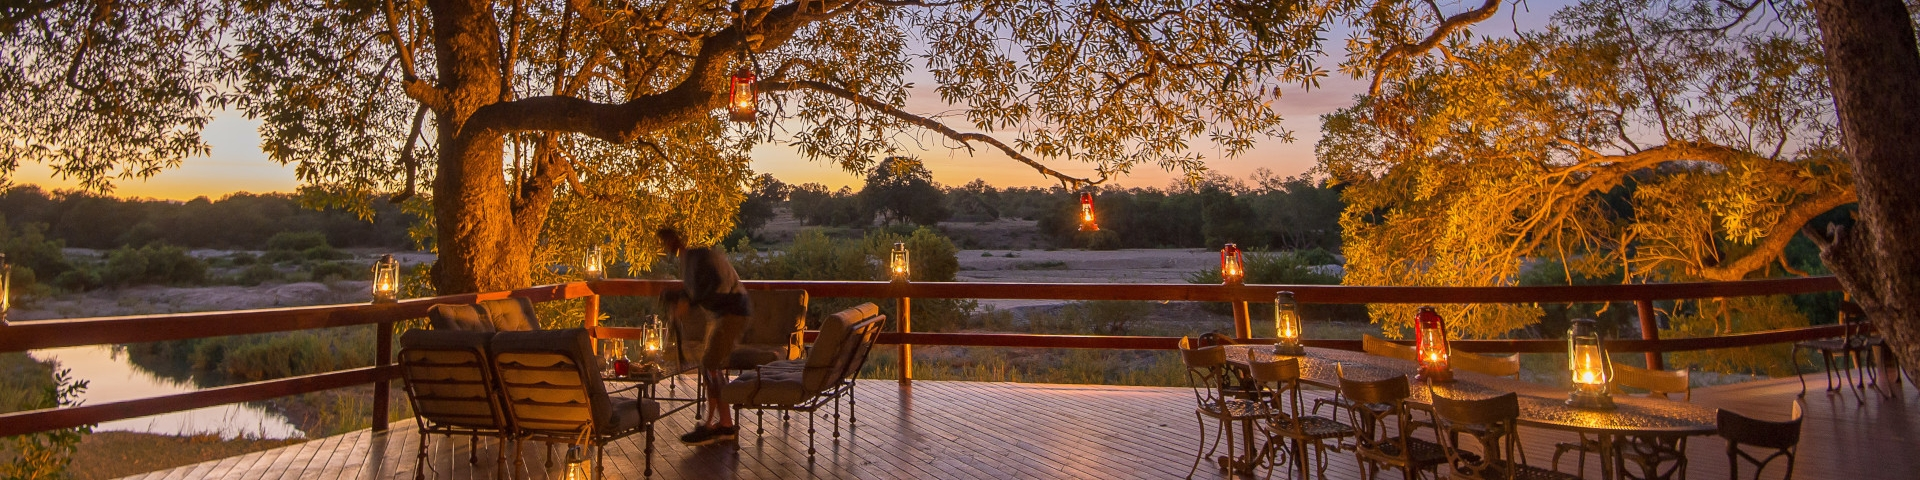 Inyati Private Game Lodge - Sabi Sand Game Reserve - South Africa - Deck with a view